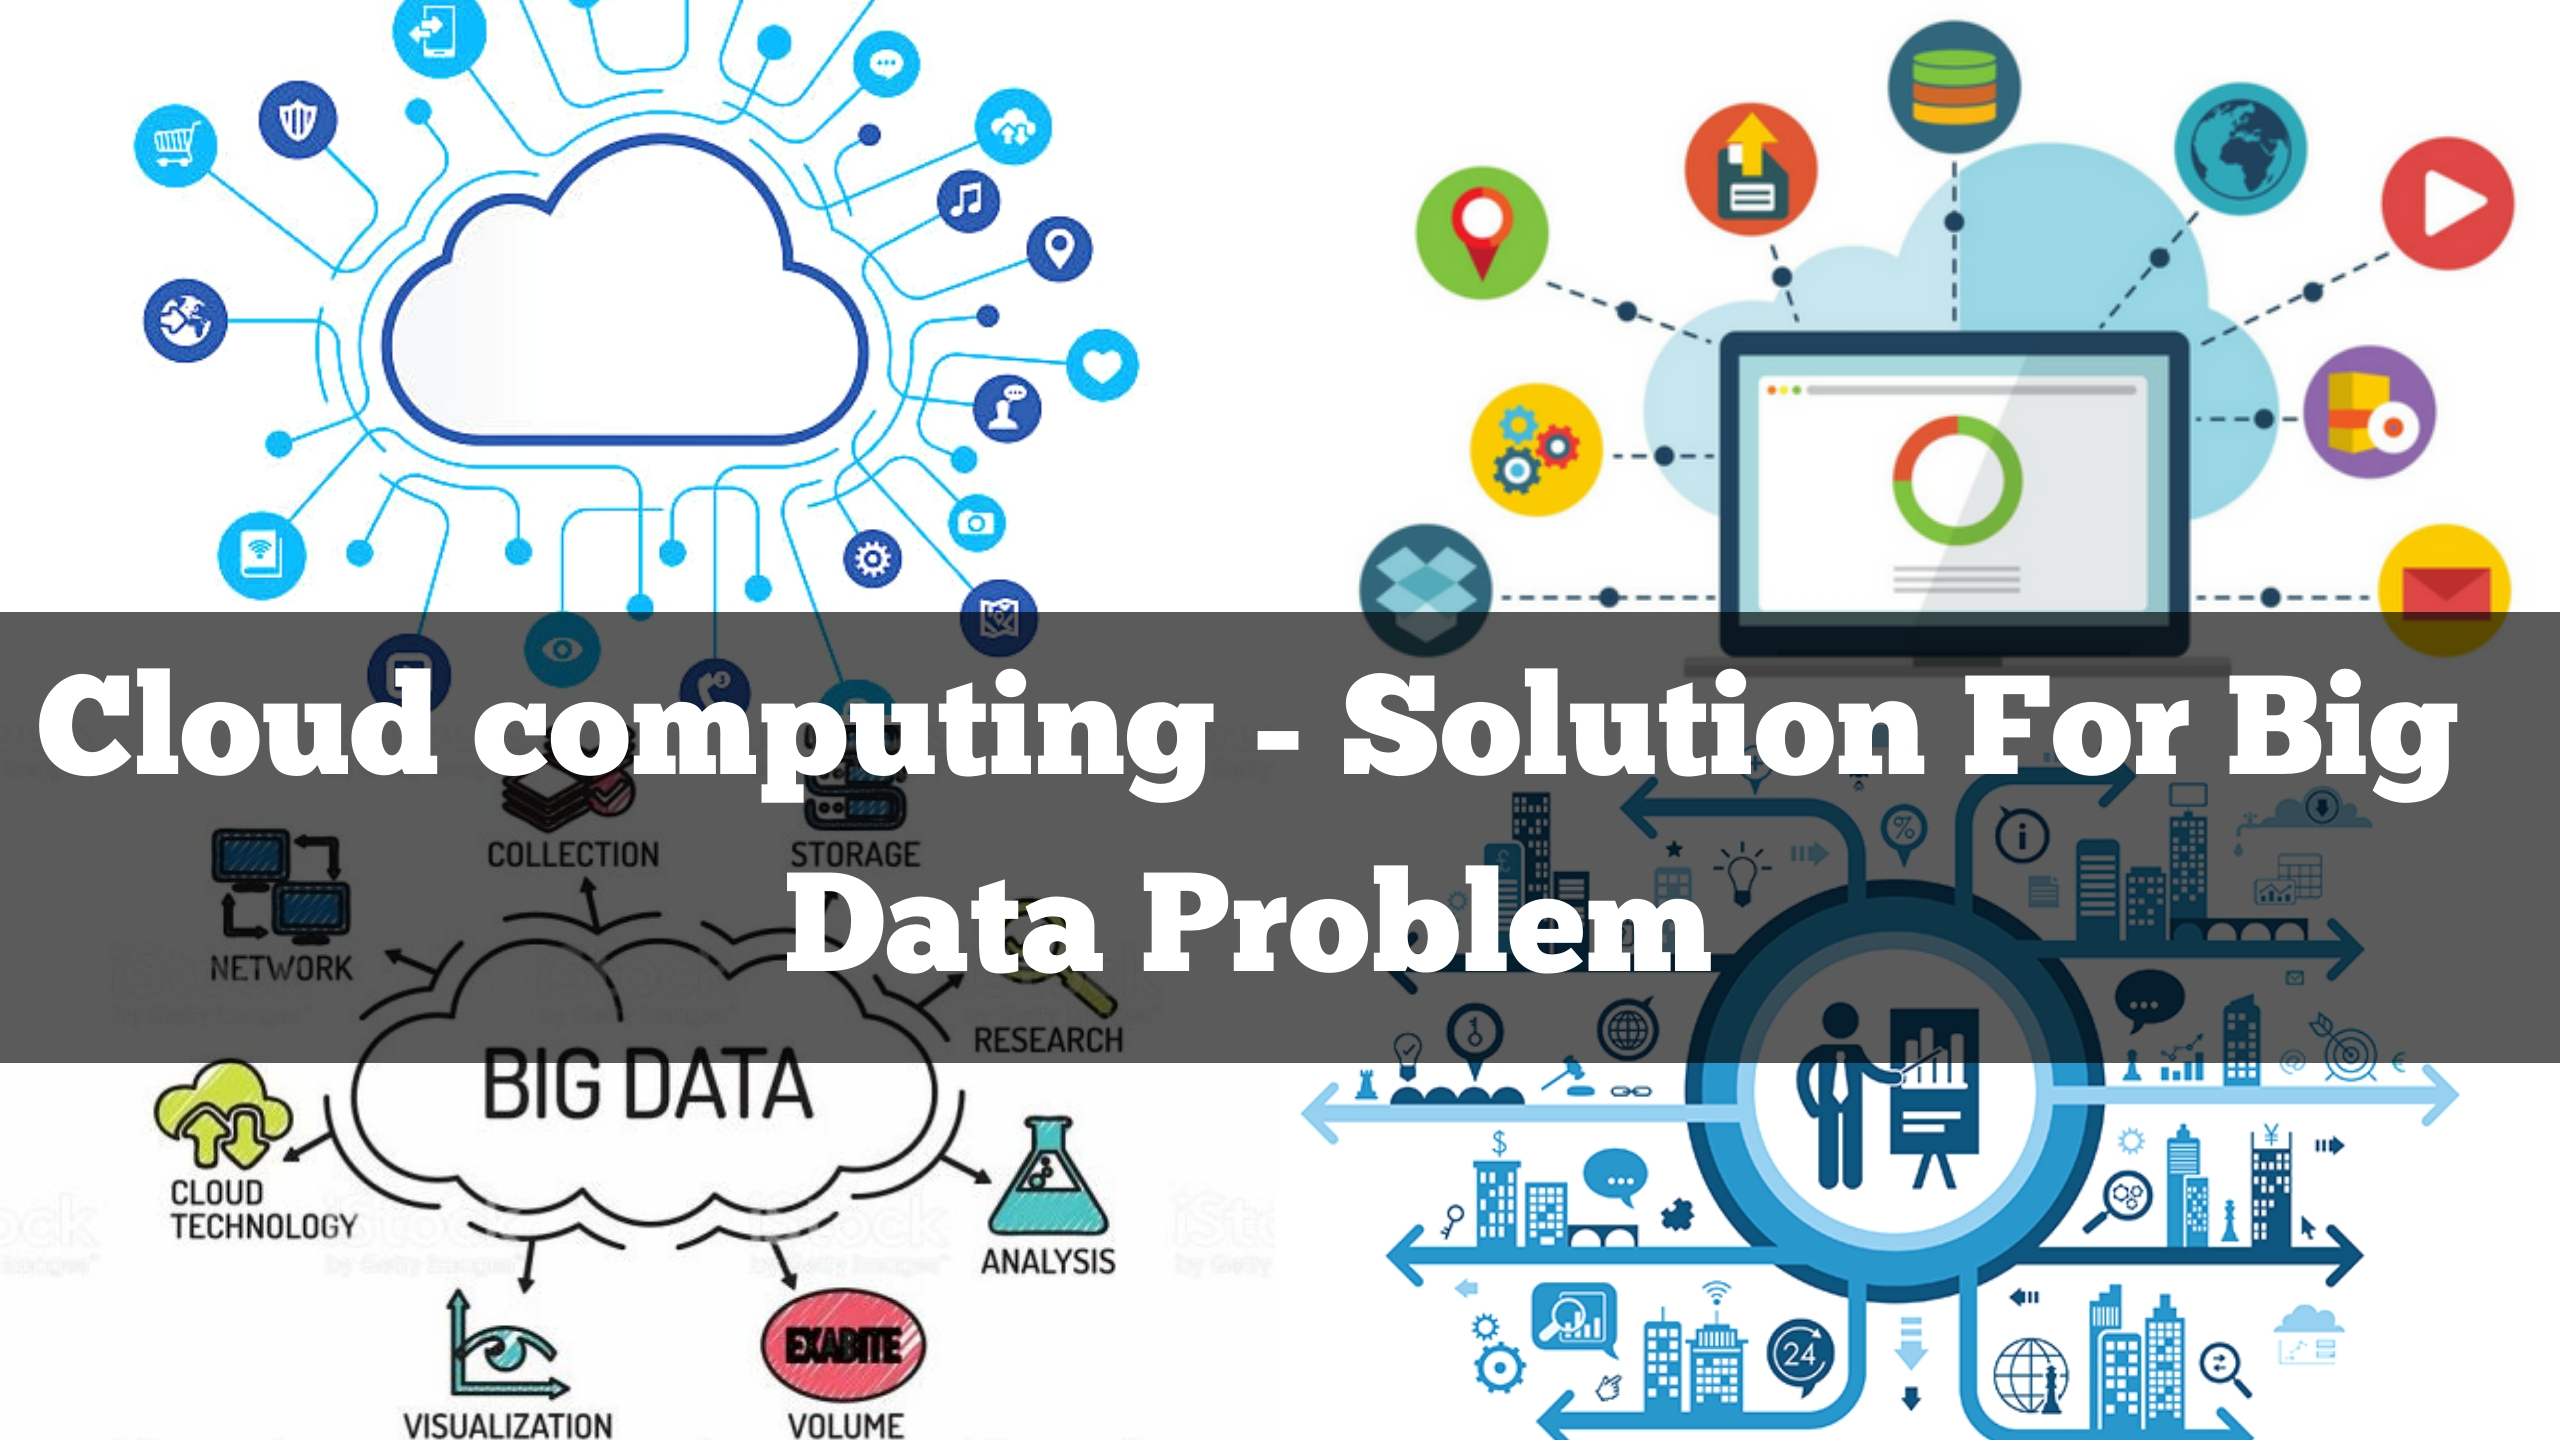 Cloud computing – Solution For Big Data Problem